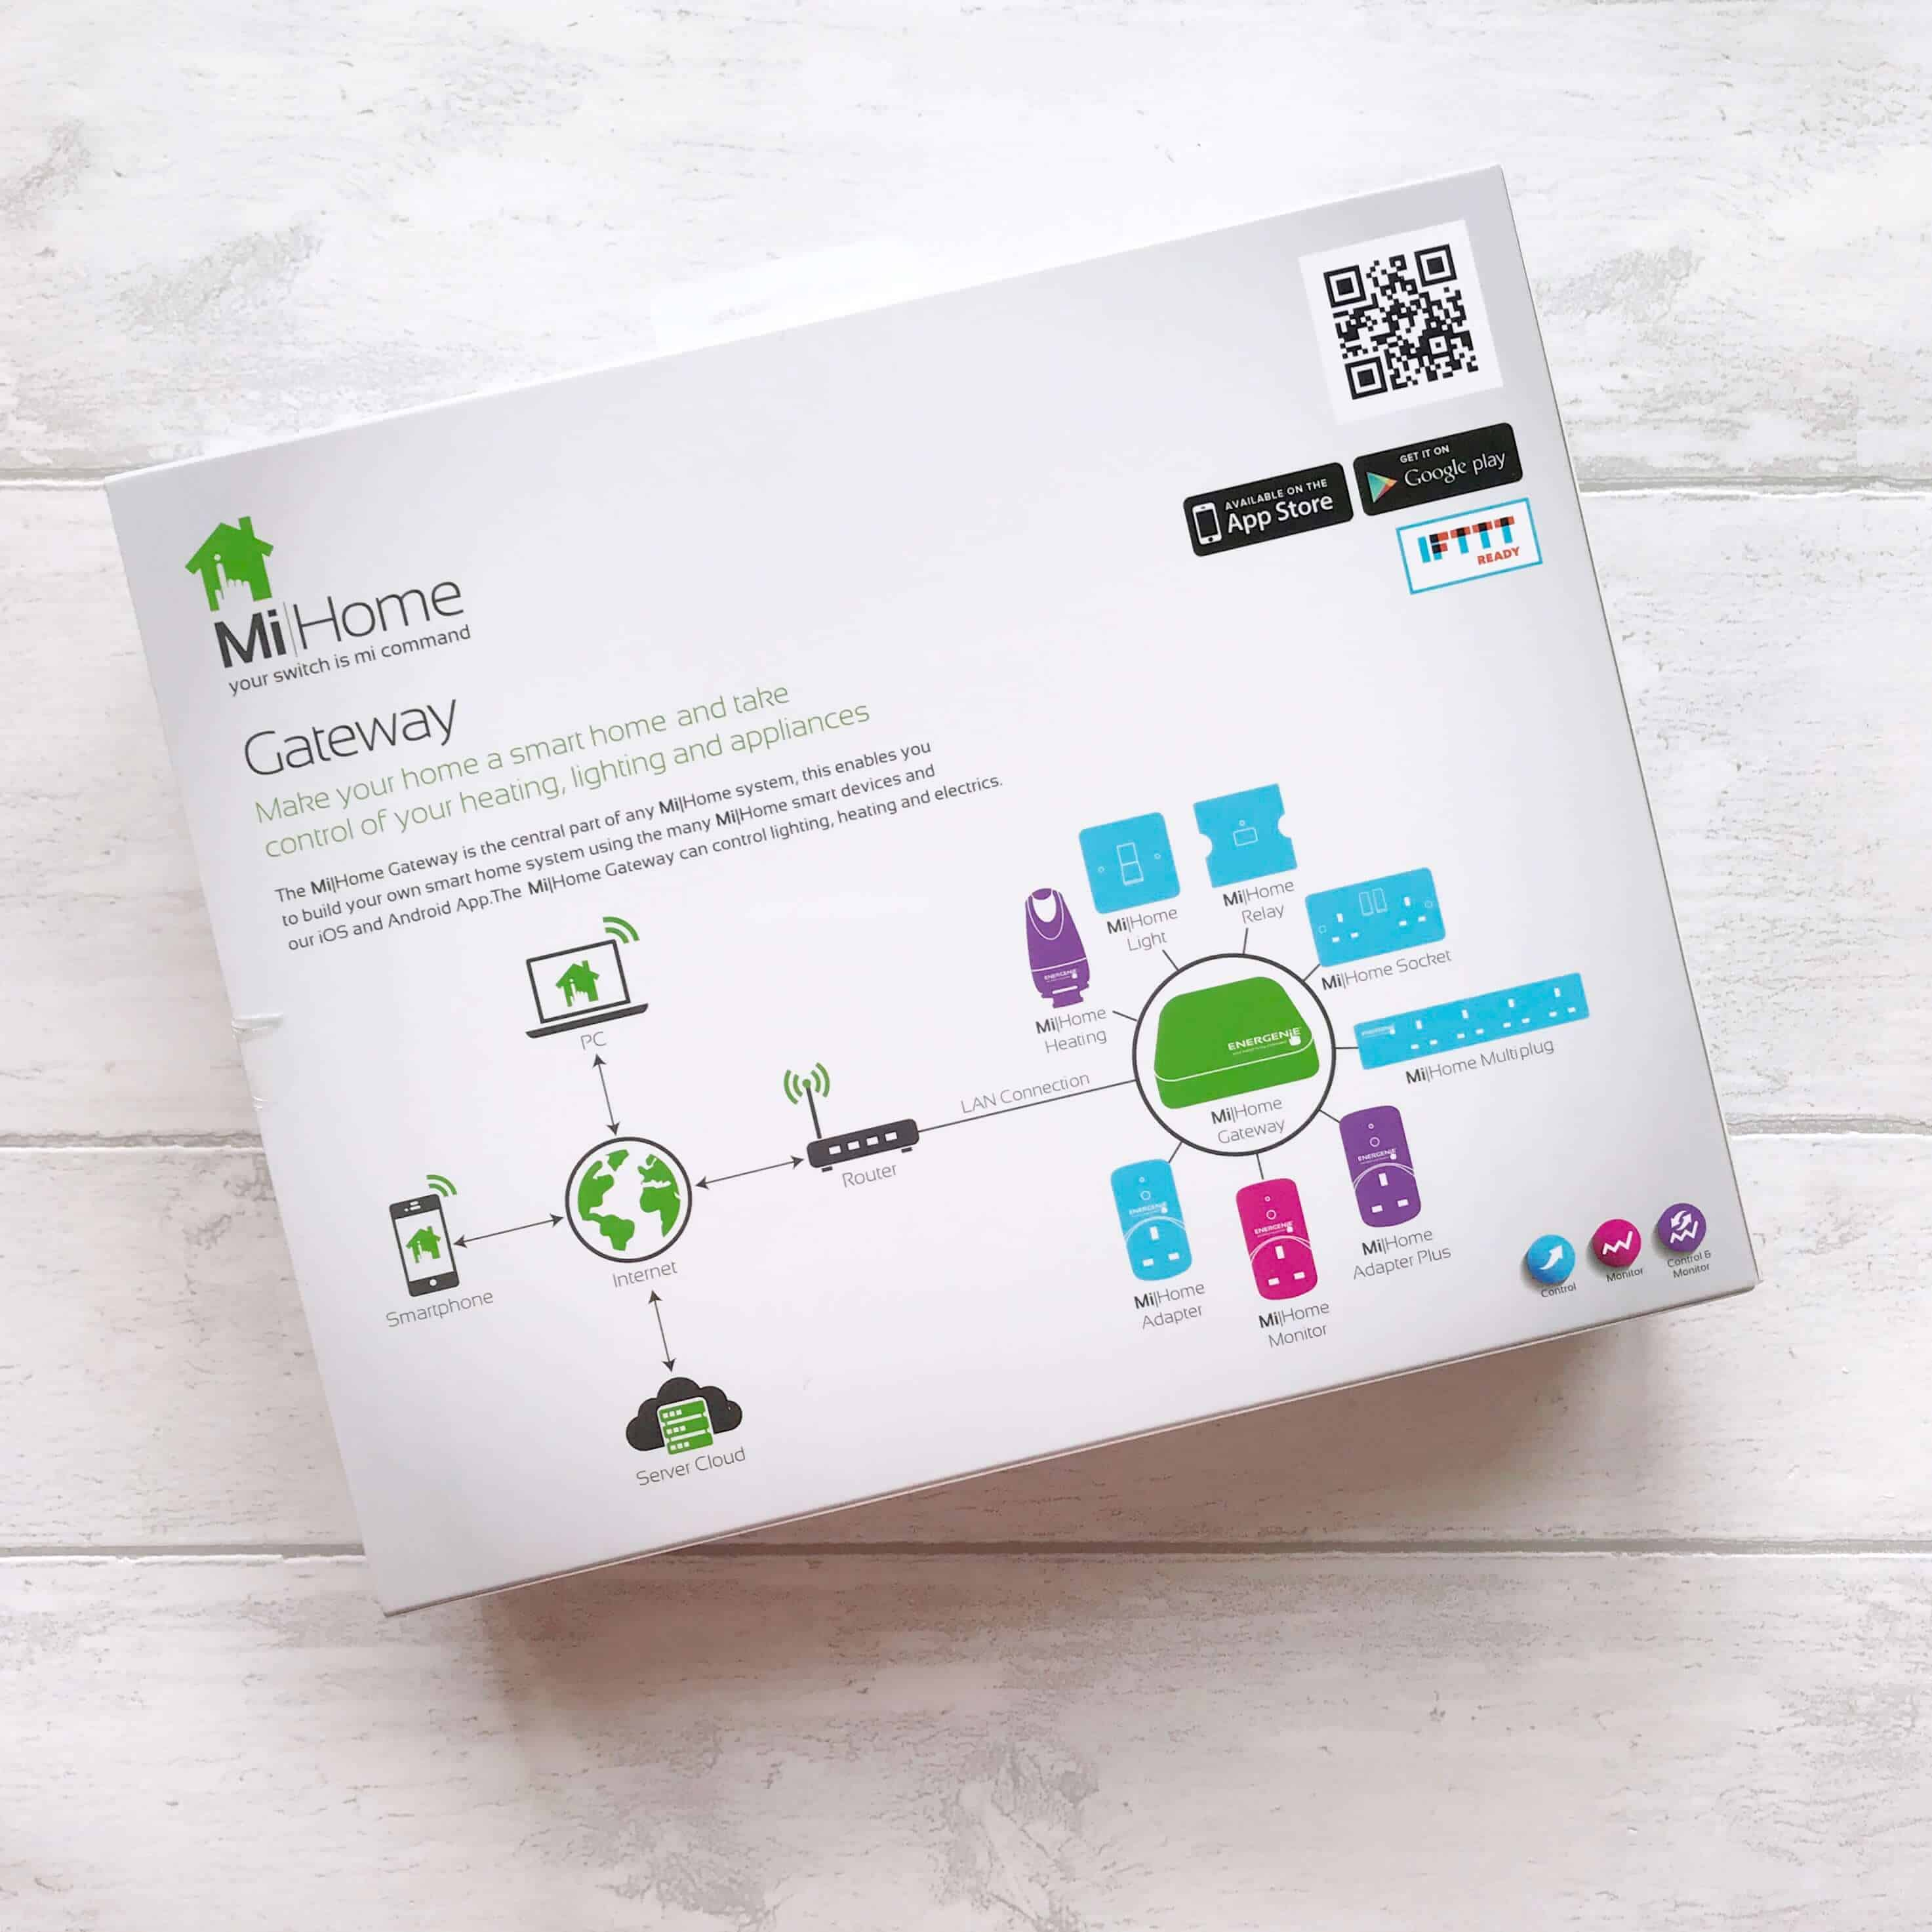 Save energy at home with the Energenie MiHome Gateway